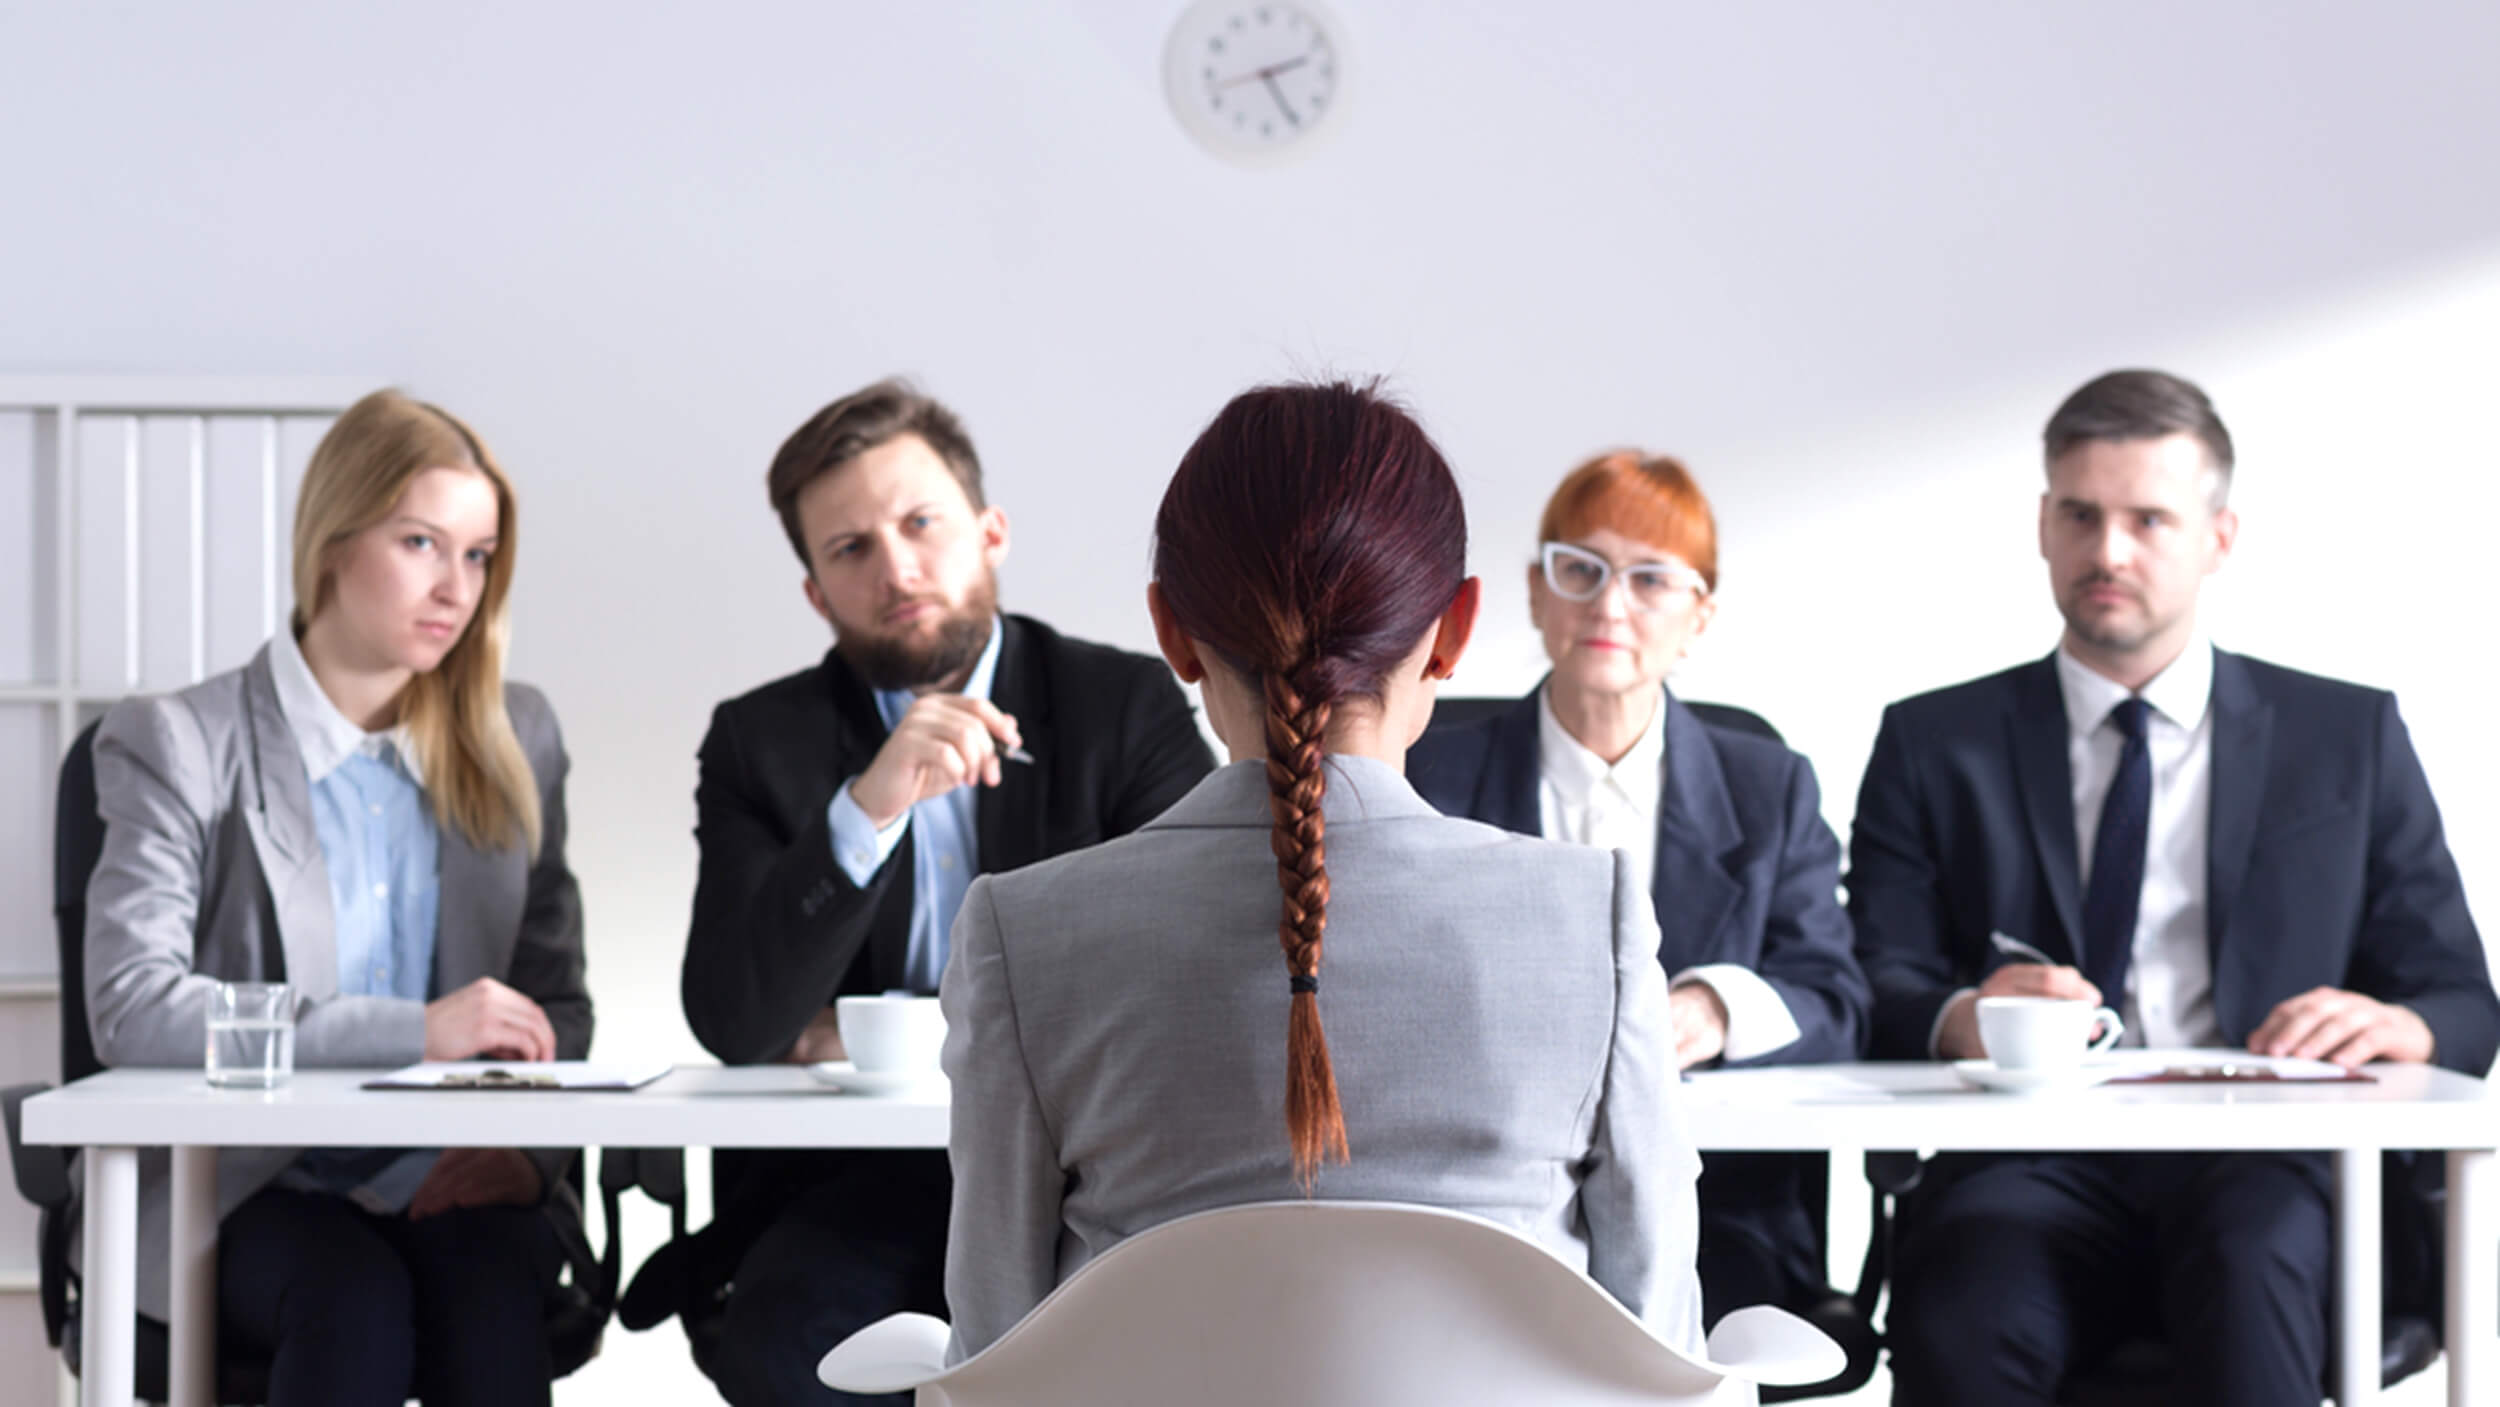 How to prepare for a case study interview?